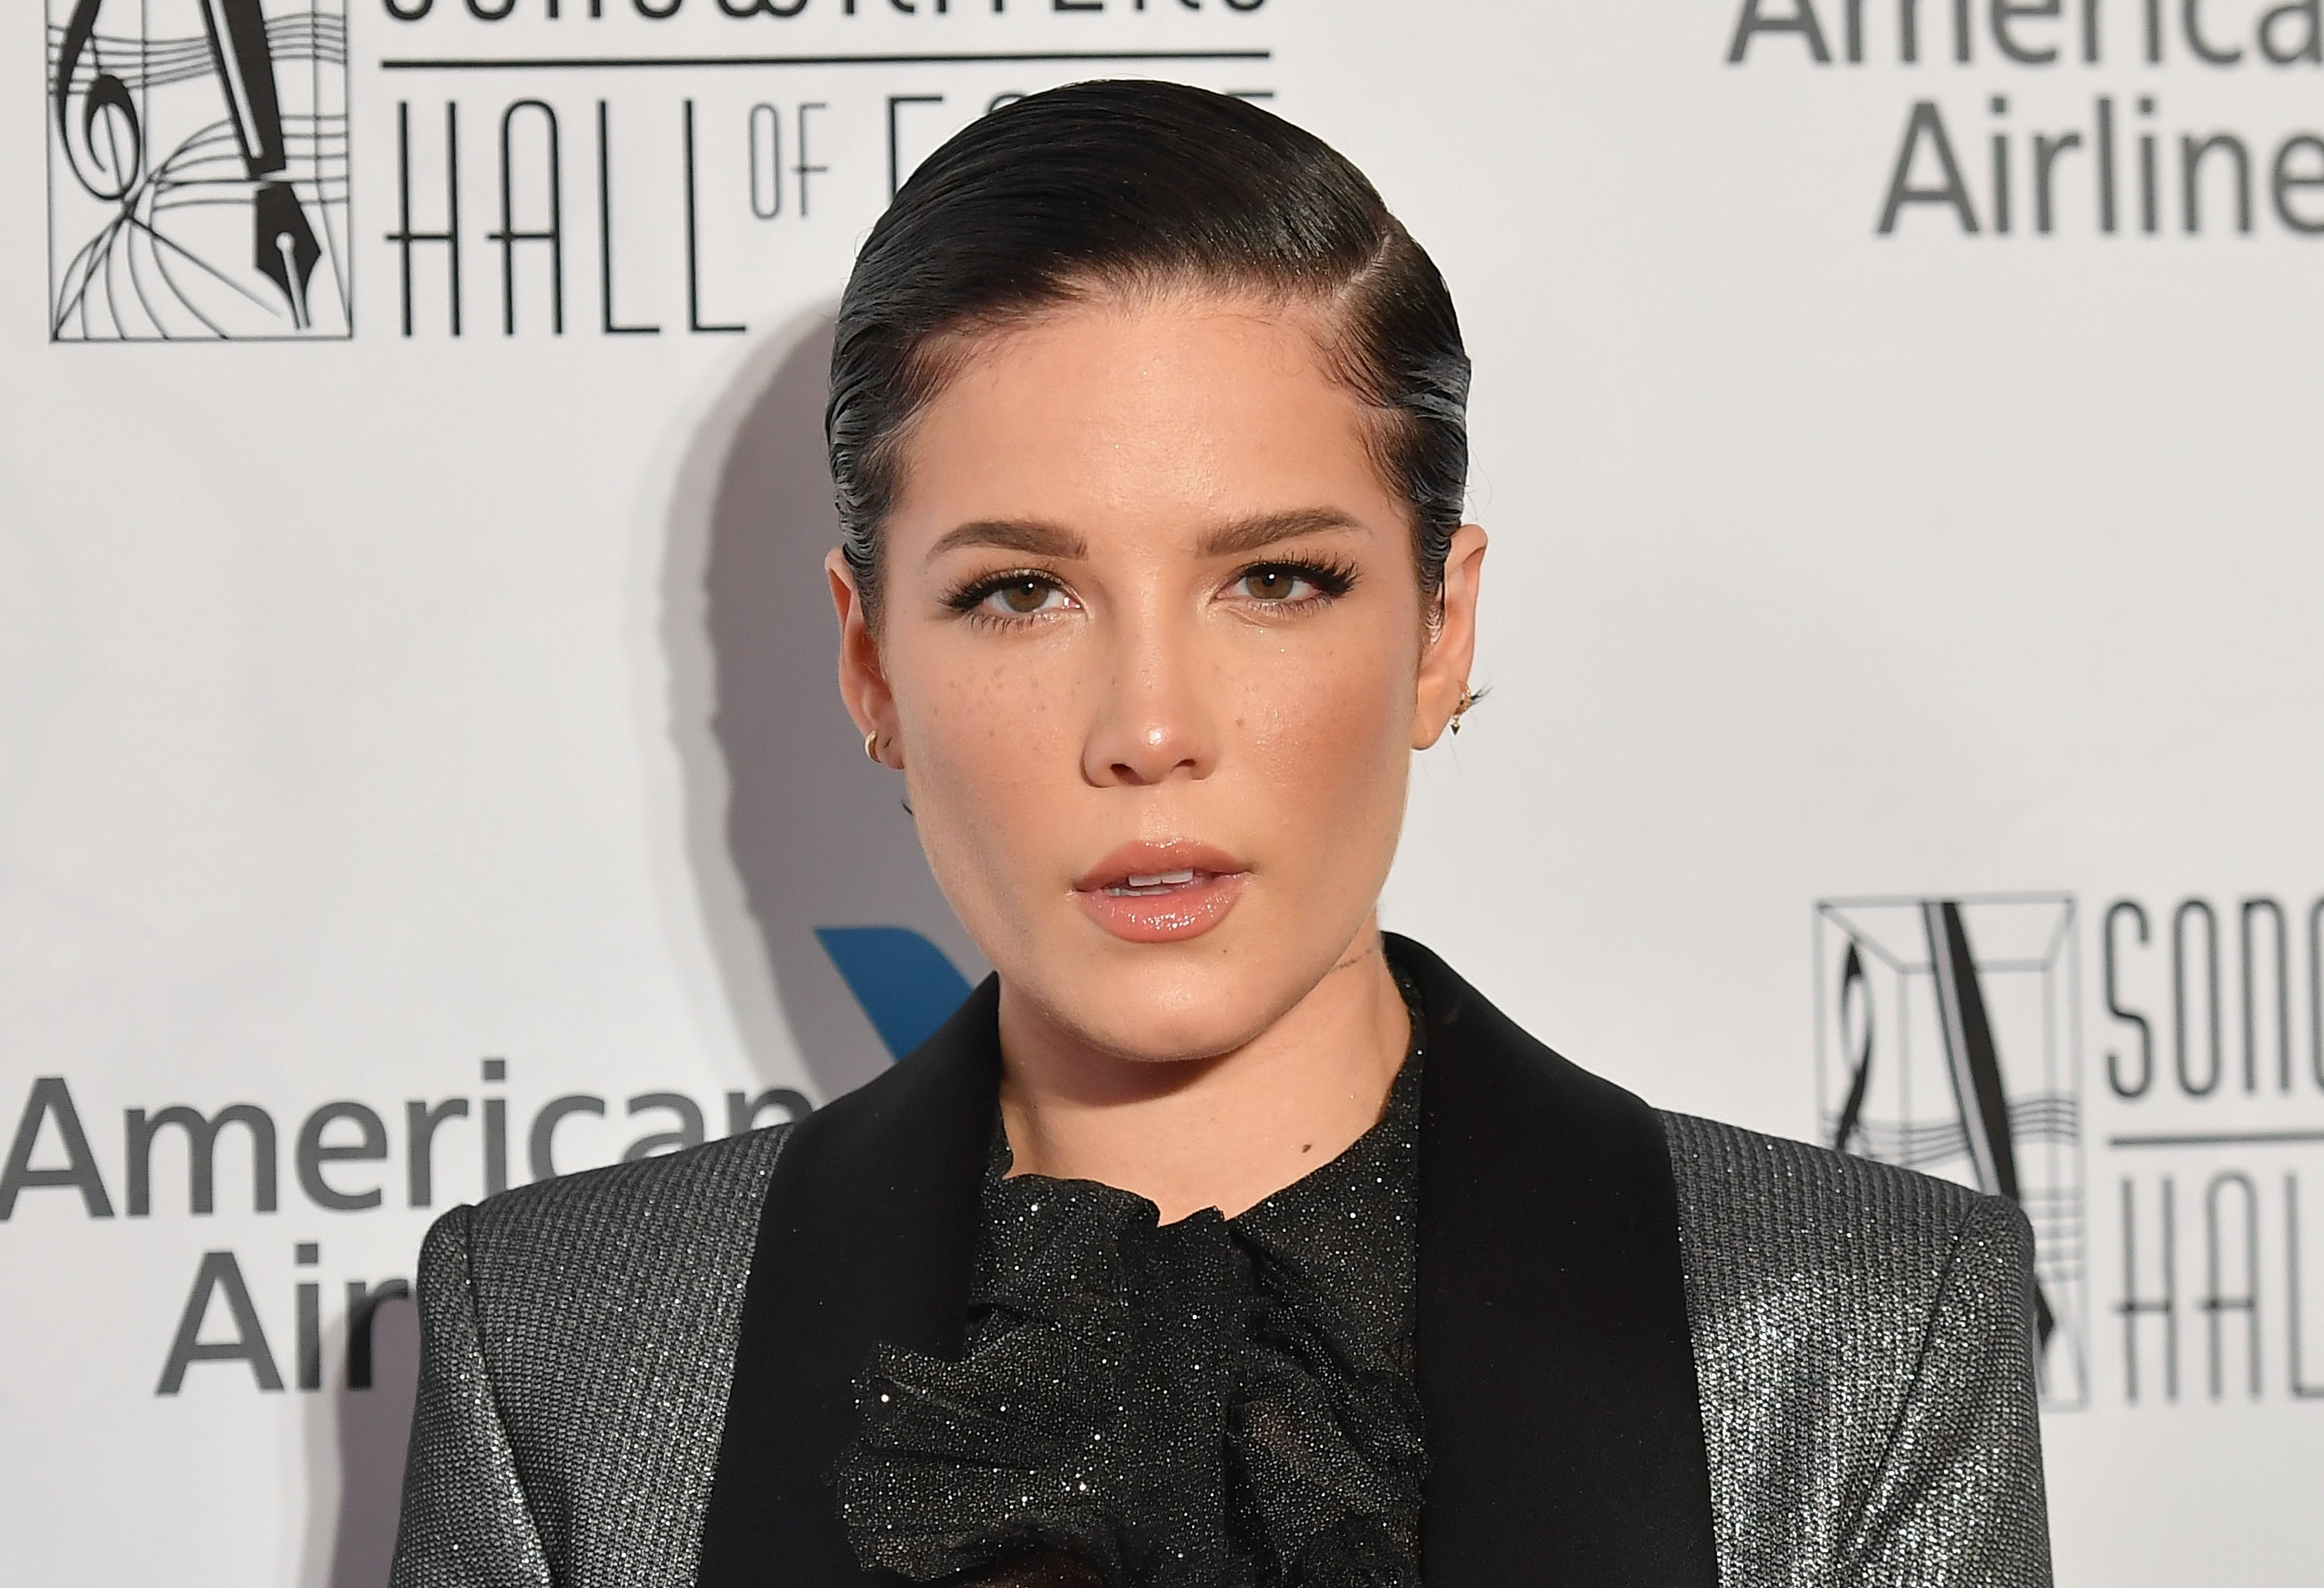 Was Halsey's Pregnancy Planned? Here's What The Star Said